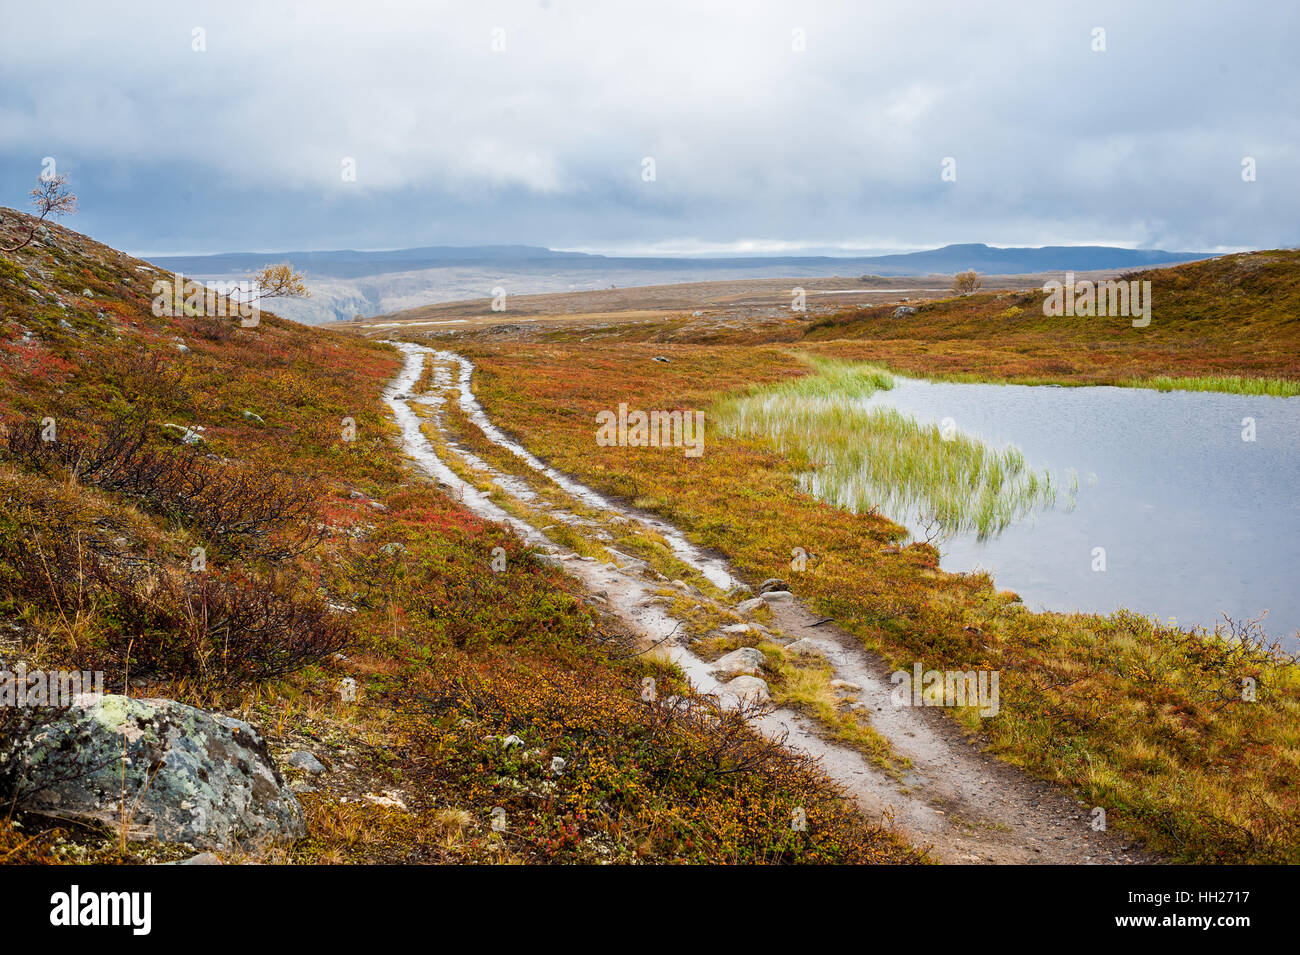 Dirt road in waterlogged moorland soil next to a small pond in a barren valley. Alta, Finnmarksvidda mountain plateau, Stock Photo